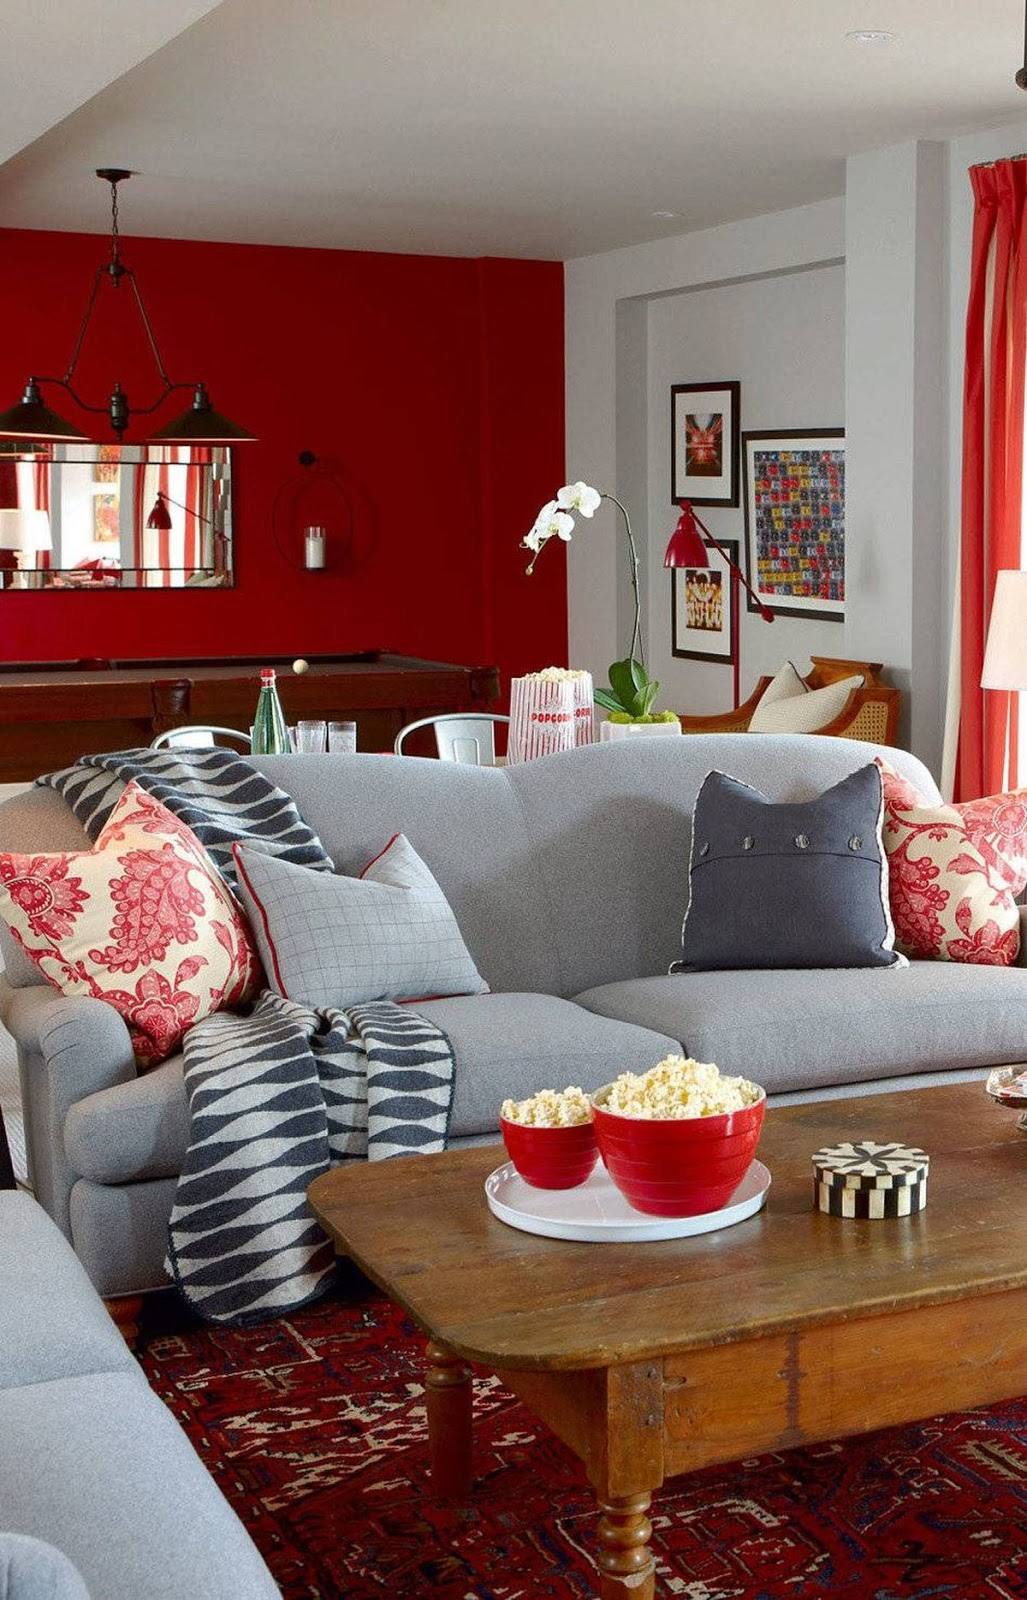 Make your basement rec room chic and inviting